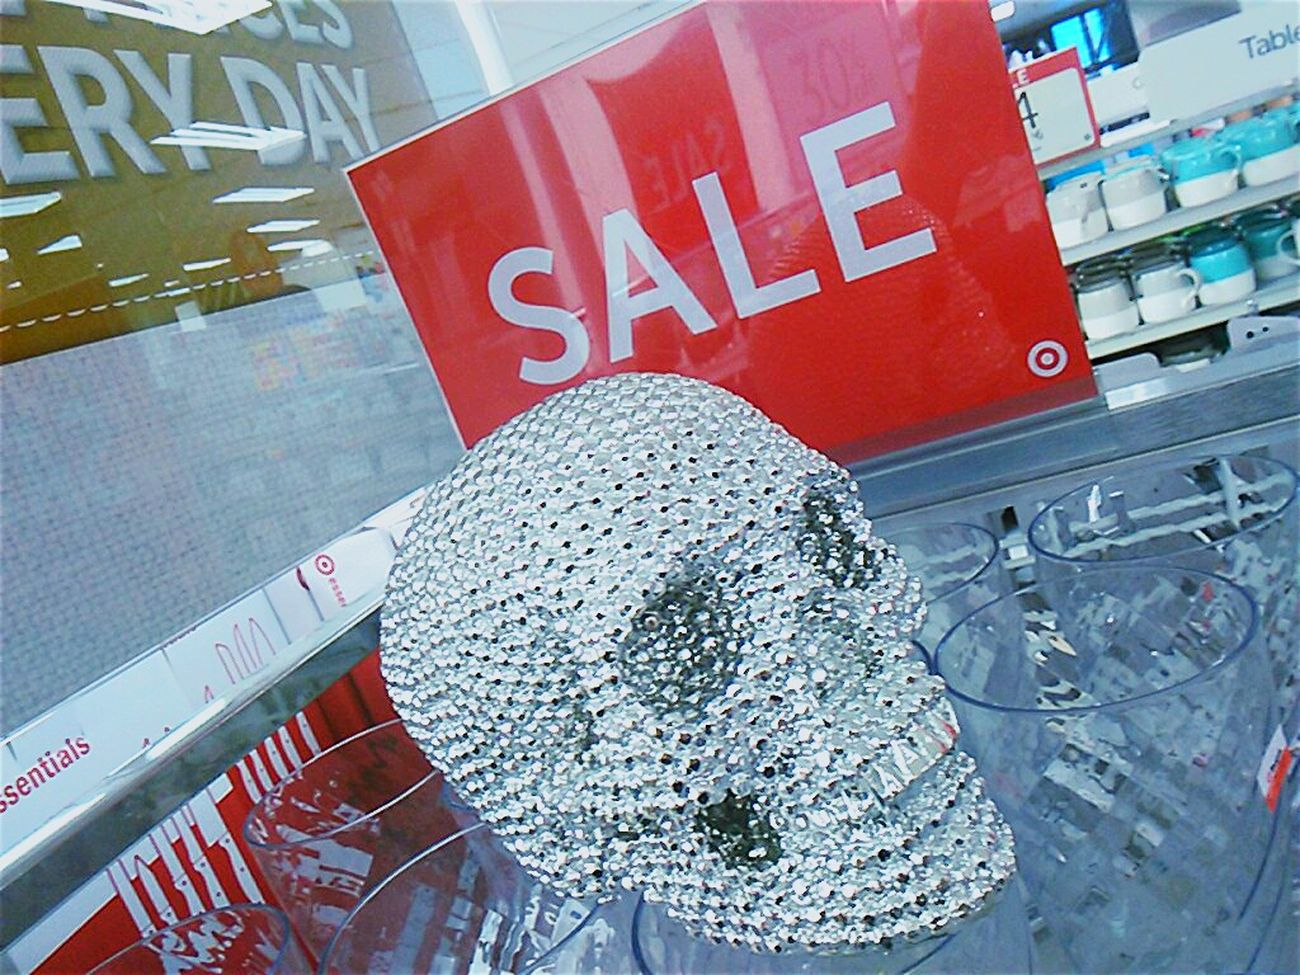 Skull Skull Art Skullporn Skulls What The F**k, Is This ? Bling Skullduggery For Sale 4 Sale Skullhead Skulls💀 Skulls♥ Skulls 💀 Skullart ArtWork Skull Face Skullshit Skullface SkullOfTheDay Cranium Sale Skulls. Checkthisout Craniums Check This Out